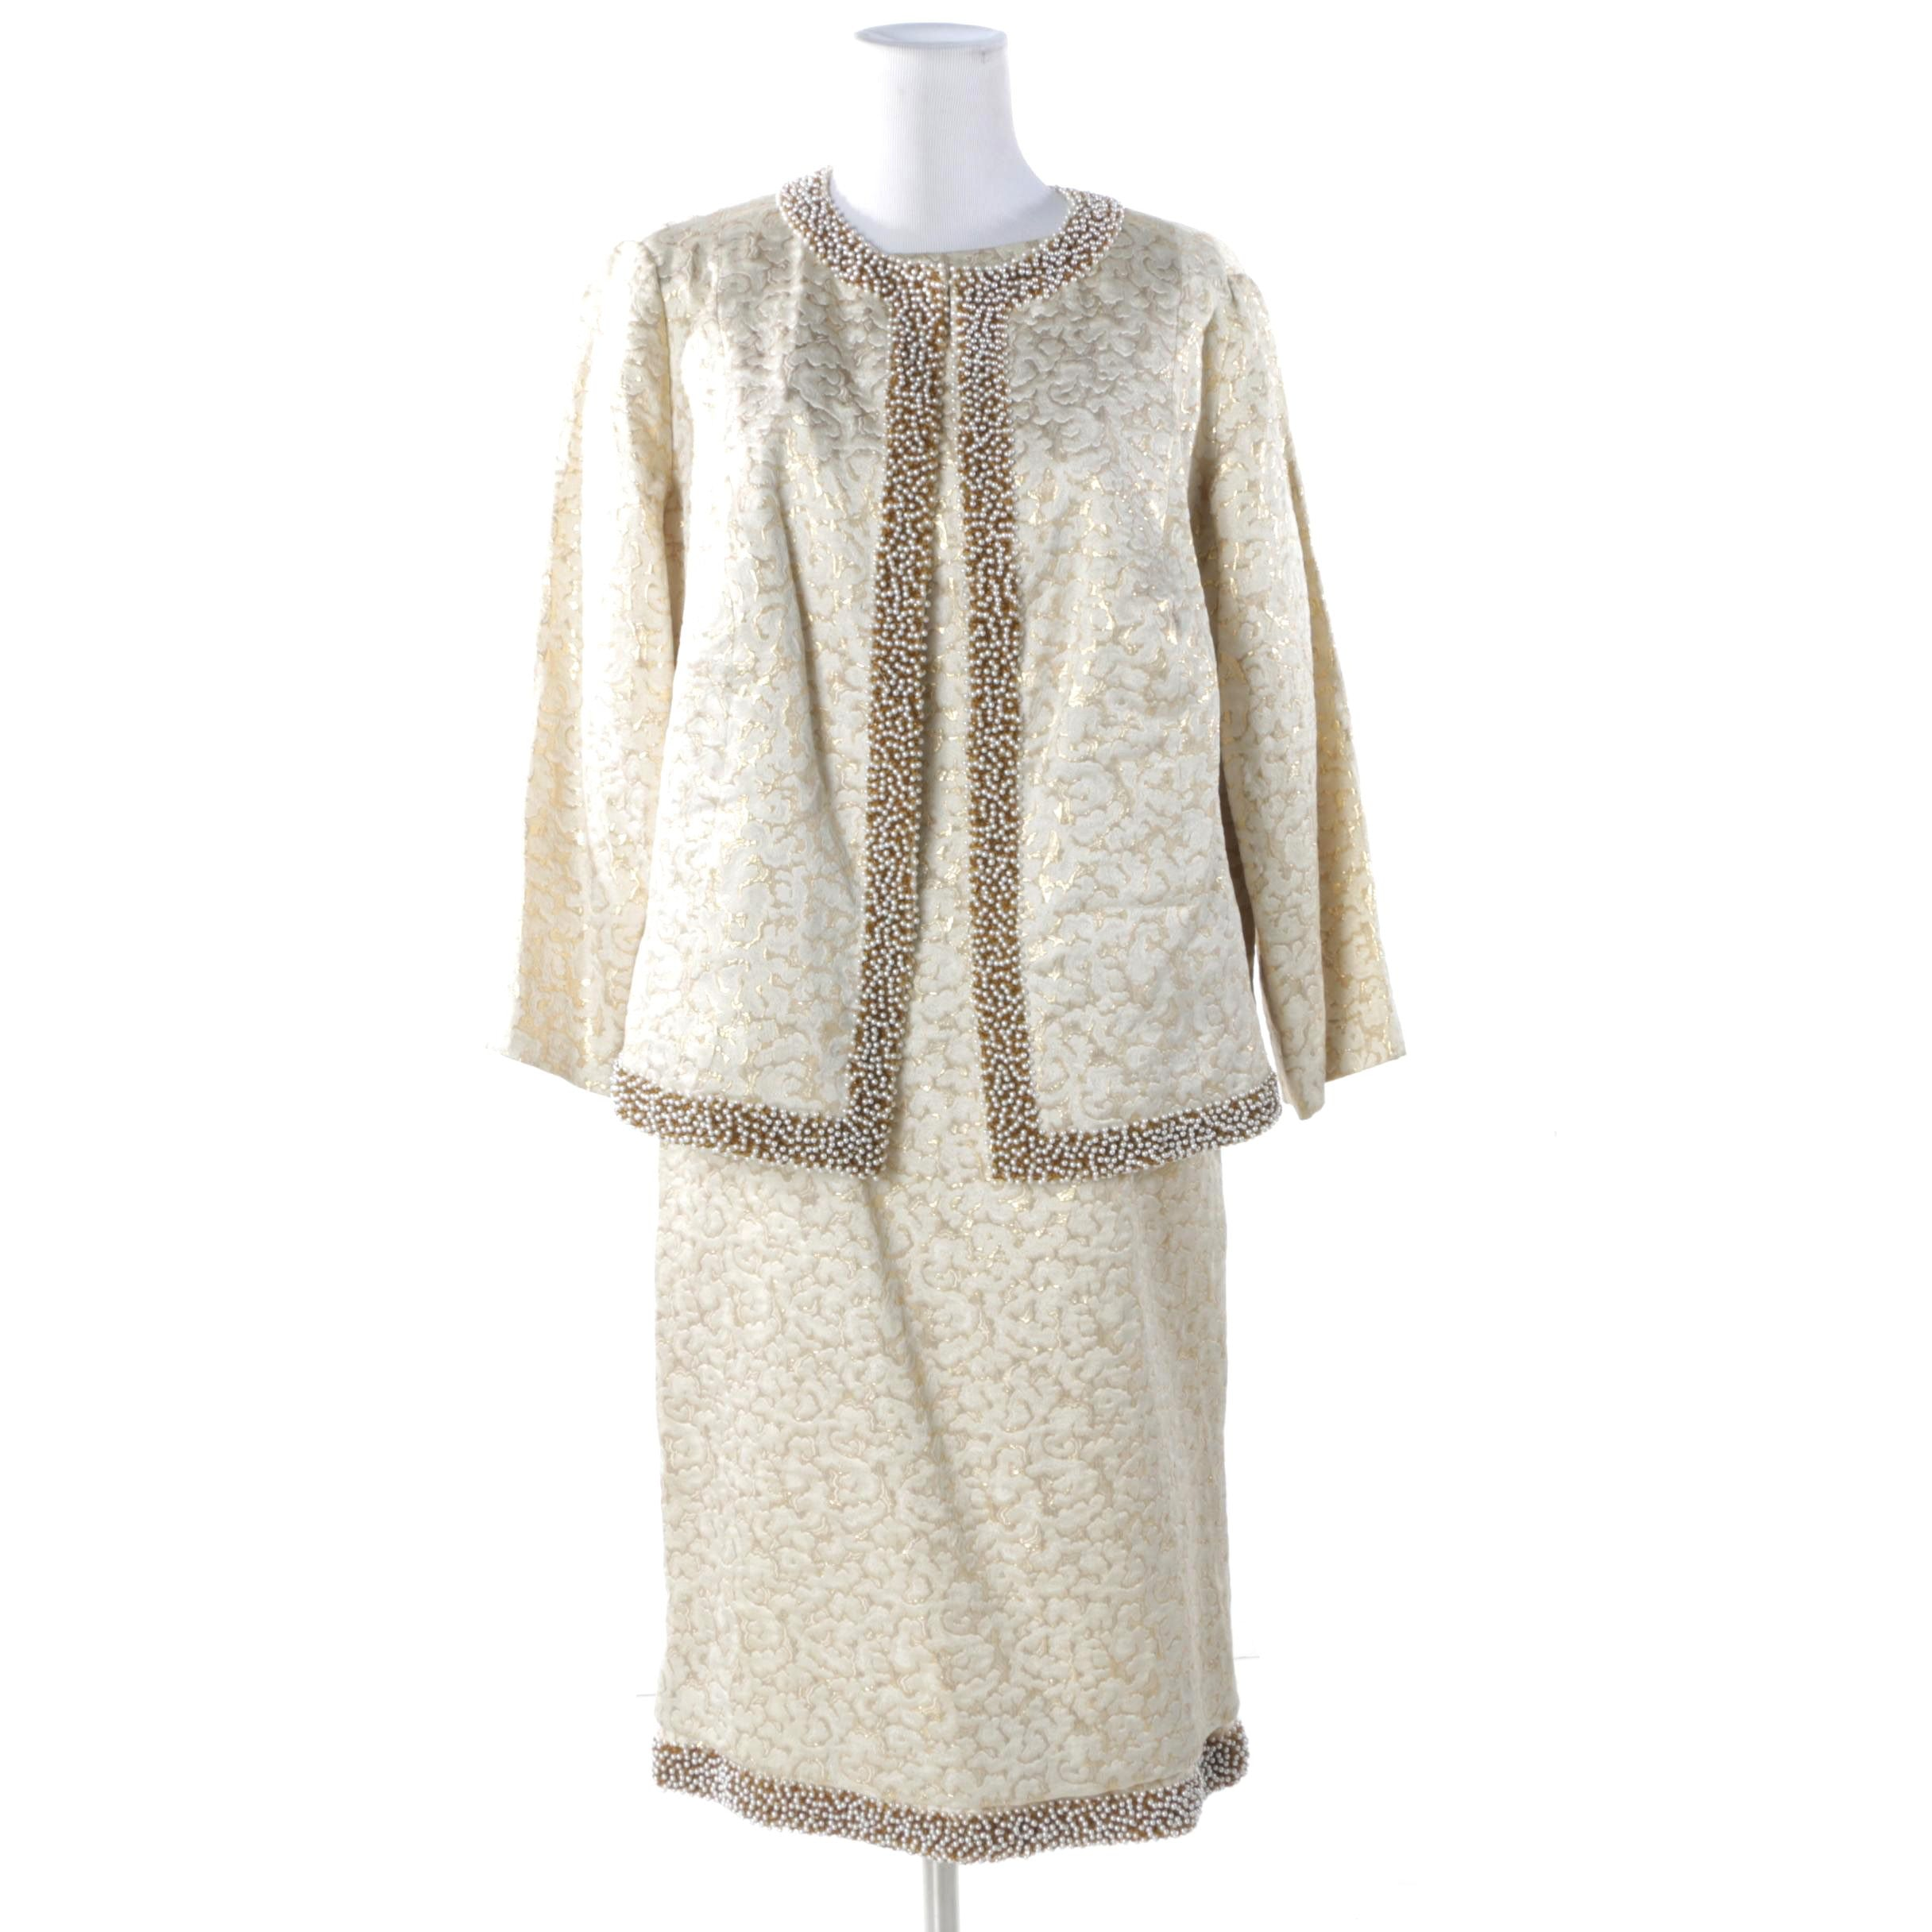 Vintage Doreen Loh Beaded Brocade Dress Suit from Hilton Hotel in Hong Kong